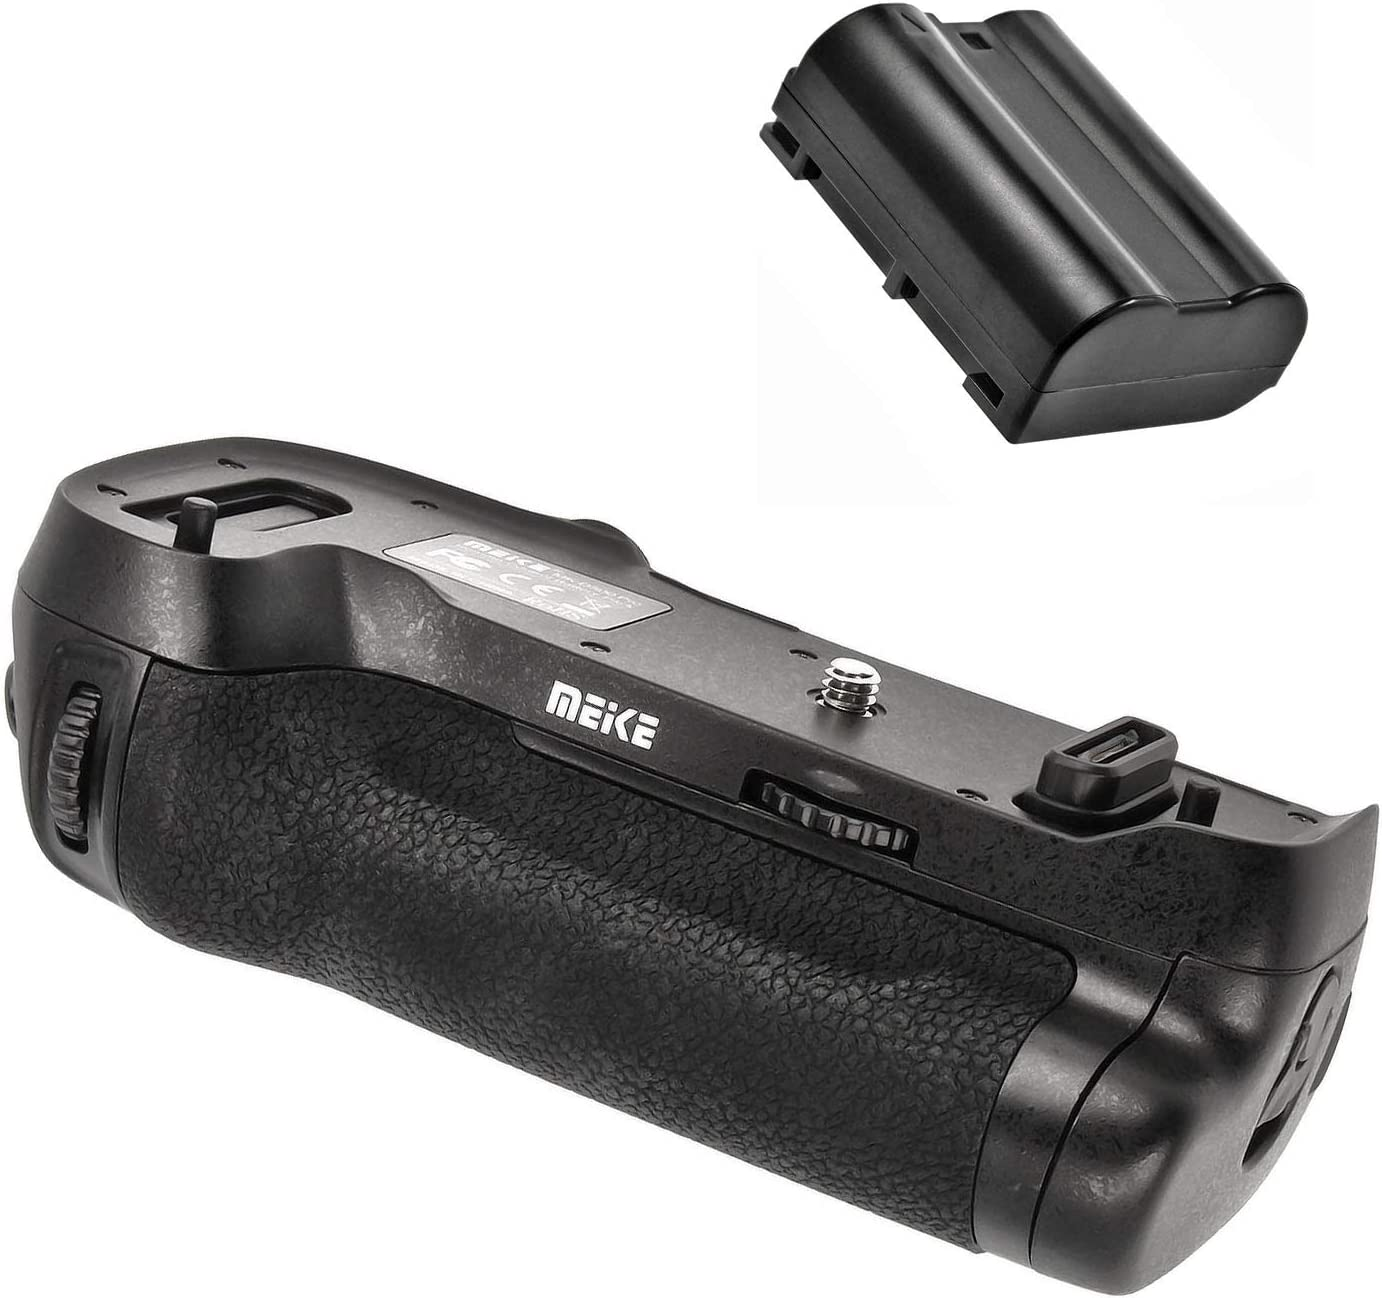 Meike MK-D500 Pro Vertical Battery Grip for Nikon D500 with EN-EL15 Replacement Battery 1600 mAh Including 2.4 GHz Remote Shutter Release with Timer and Interval Function